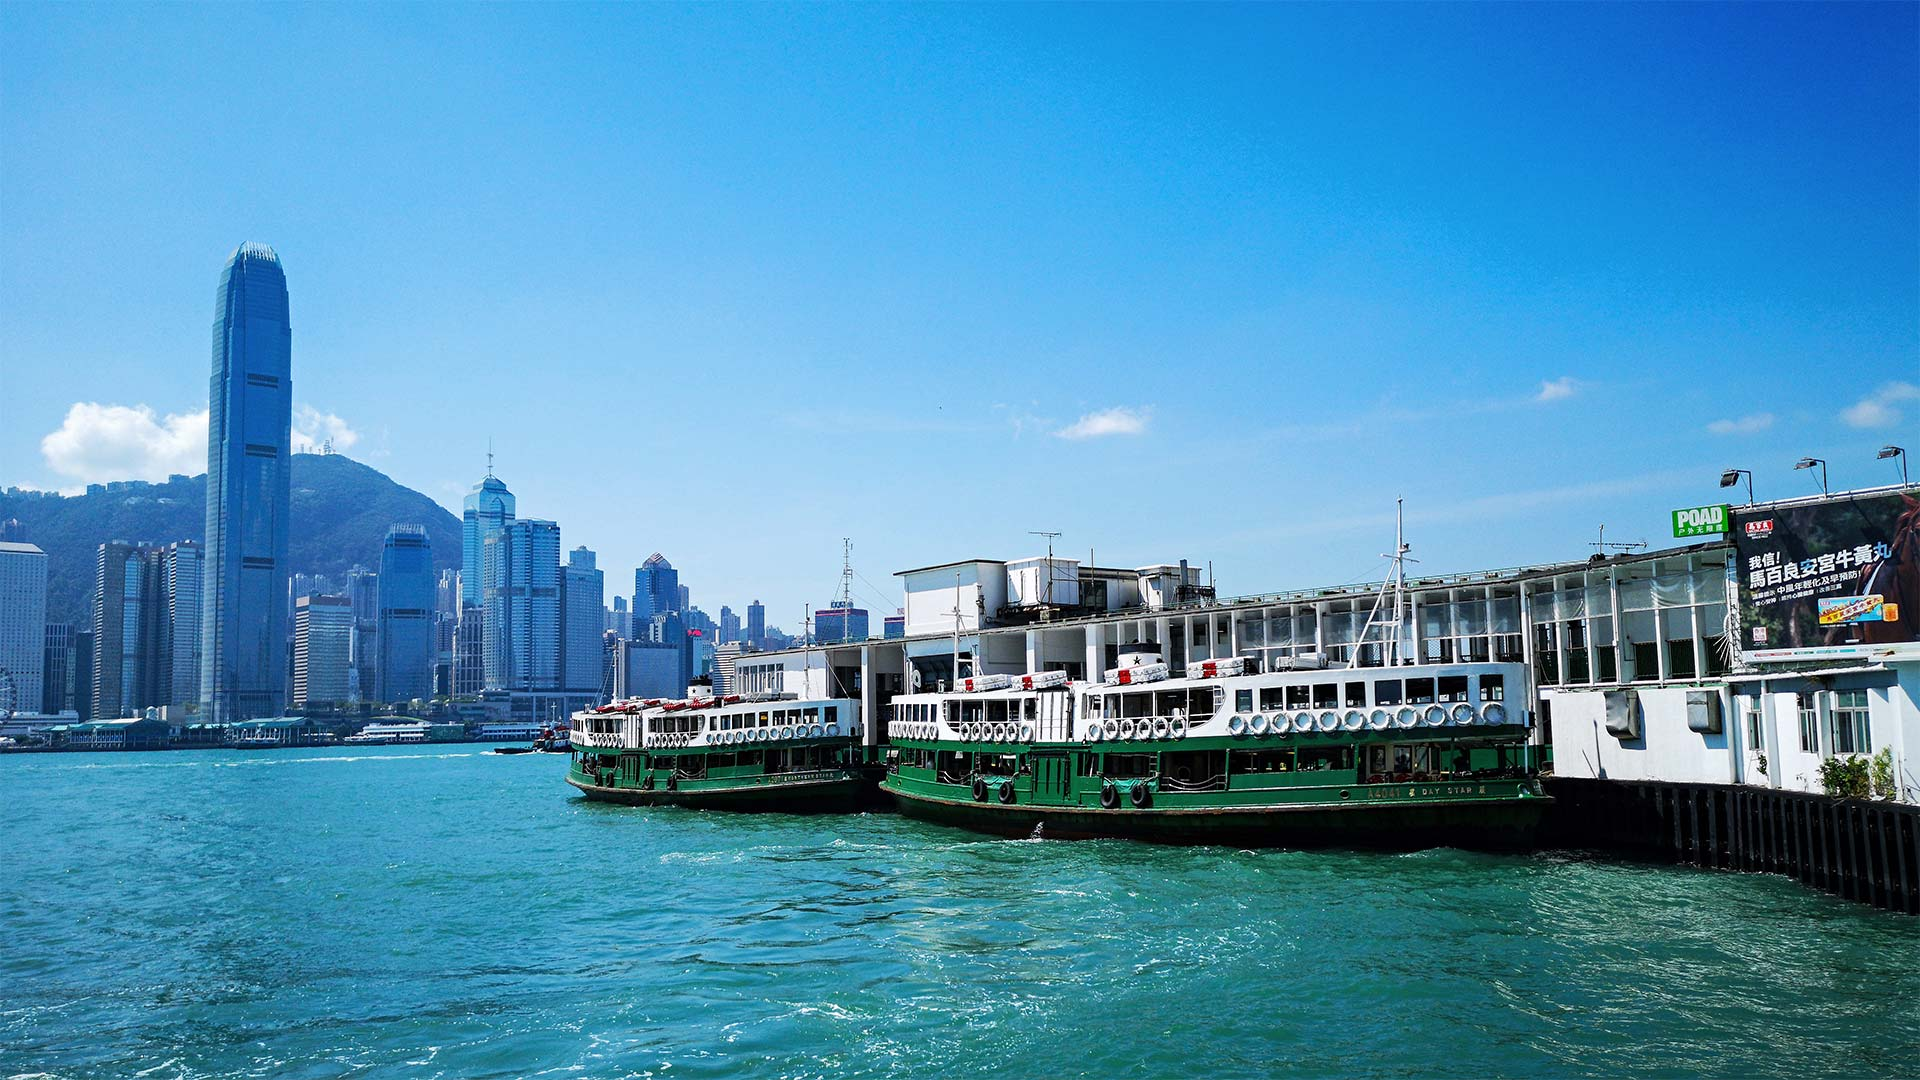 The Star Ferry Pier in Kowloon with the skyline of Hong Kong Island in the background